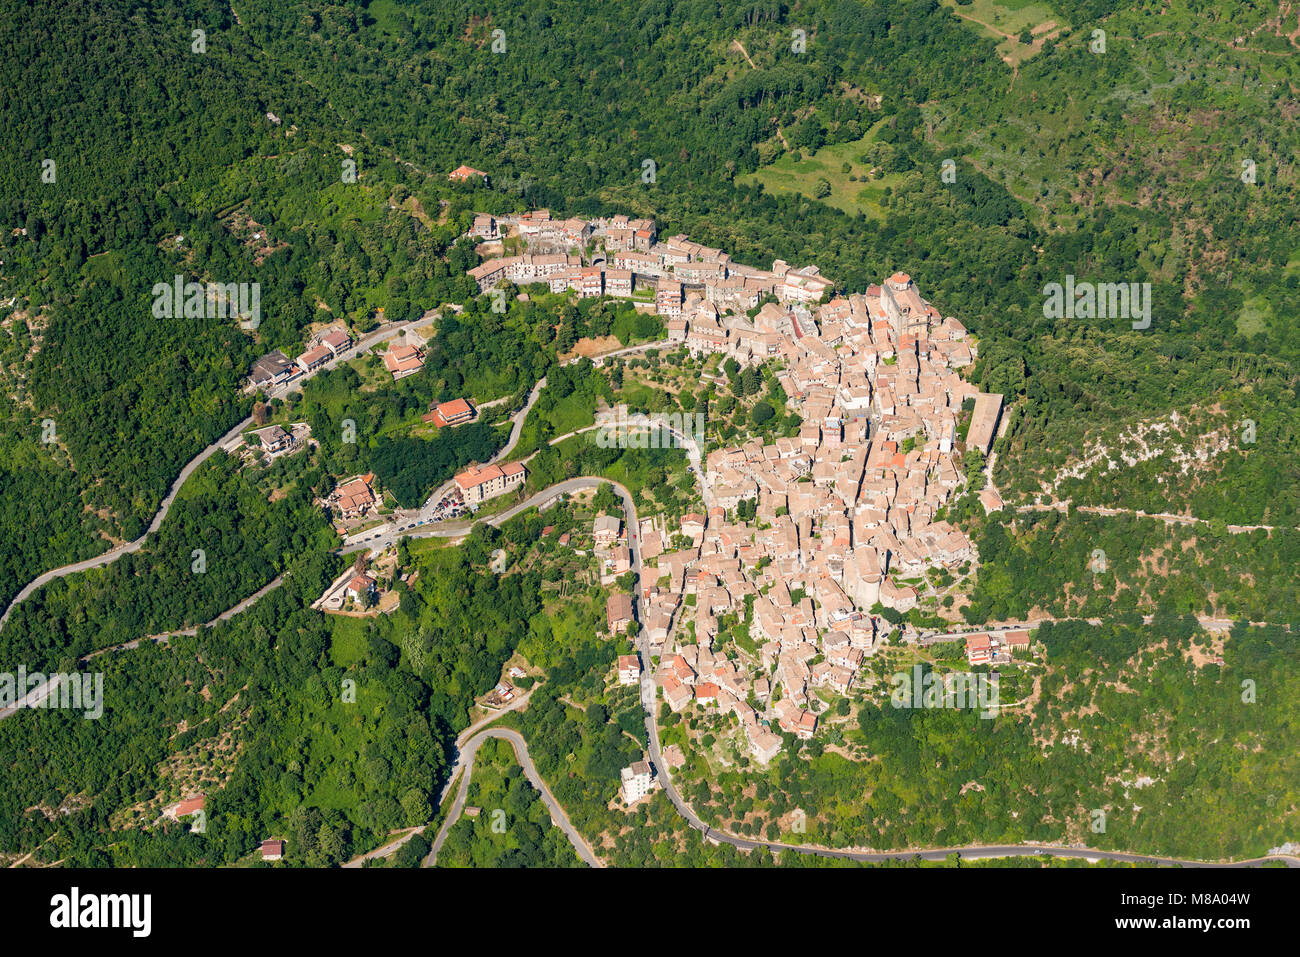 Aerial image of the village of Patrica surrounded by forests in the Lazio region of Italy, Province of Frosinone Stock Photo